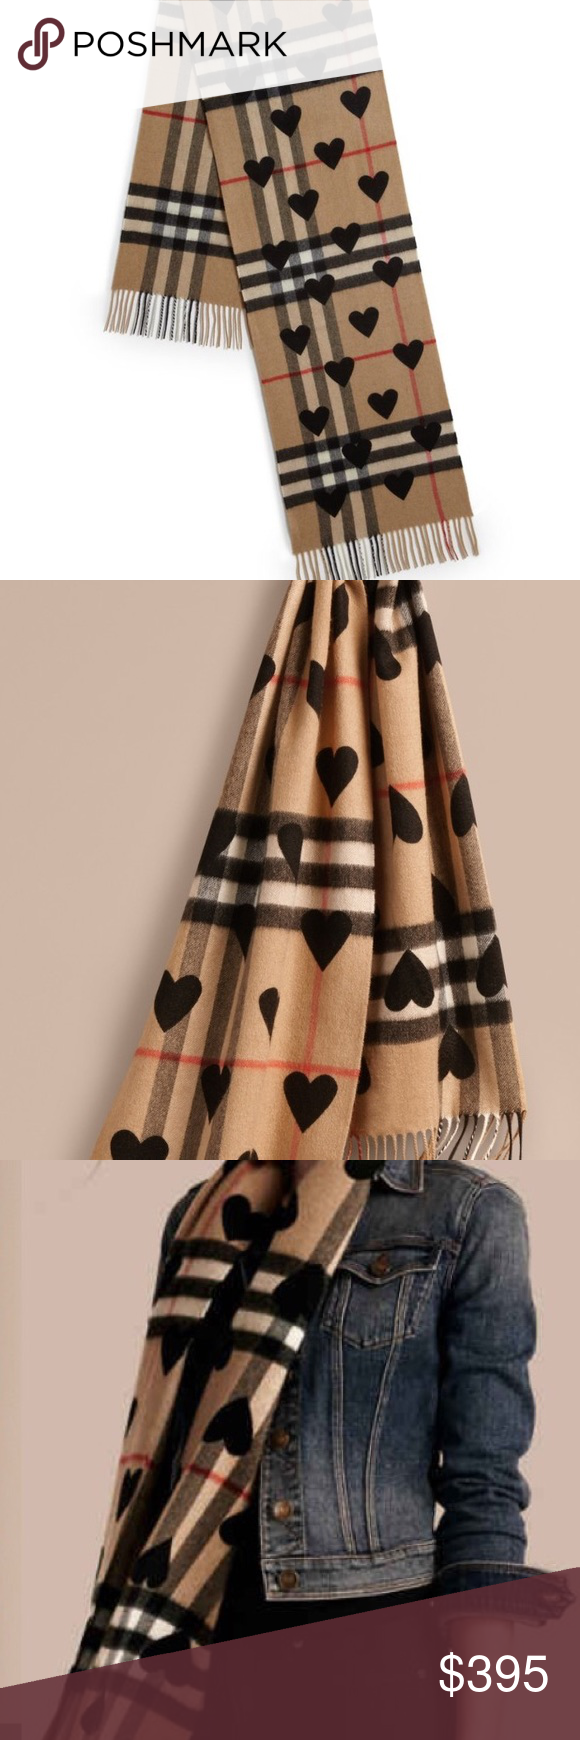 Burberry scarf check with hearts new! Brand new Burberry